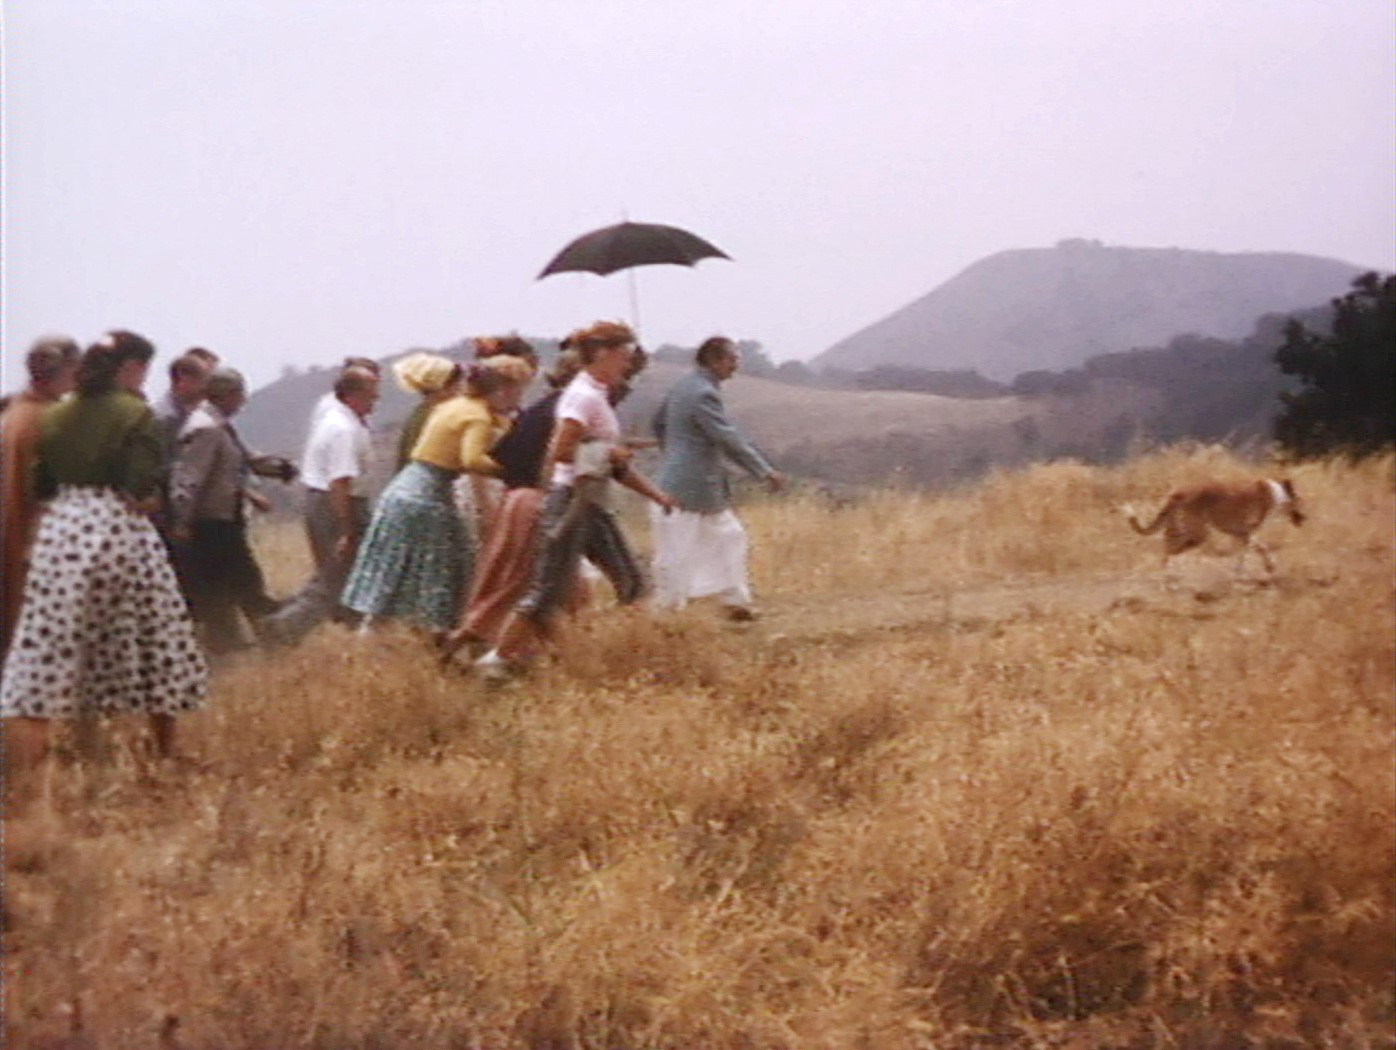 AVATAR MEHER BABA'S FOLLOWERS are hurrying to keep up with Him on a tour of Meher Mount on August 6, 1956. This photograph is a screen capture from the film,   Meher Baba in the USA, 1956   ,  by Charmian Duce Knowles and produced and copyrighted by Sufism Reoriented. (Image: Courtesy David Pastor, Sufism Reoriented)